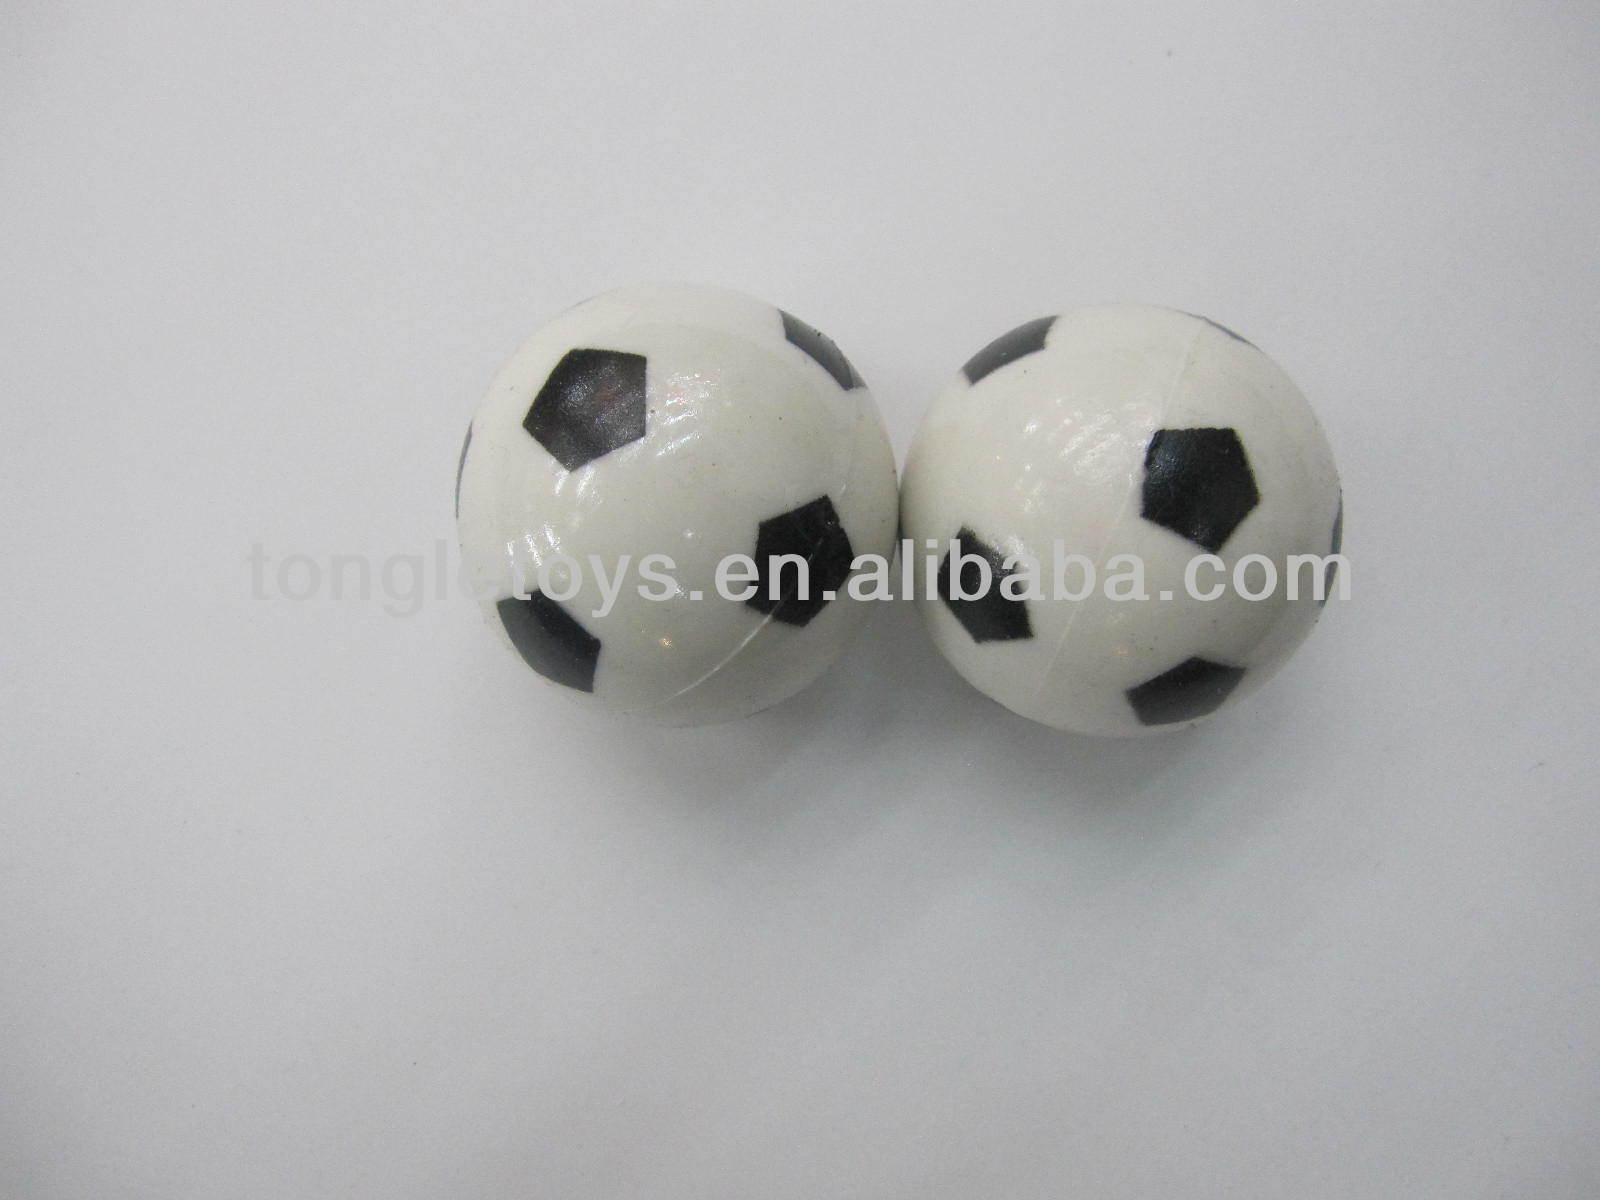 Flashing Bouncing Football,Hollowing Flashing Bouncing Ball EN71,CE,ASTM